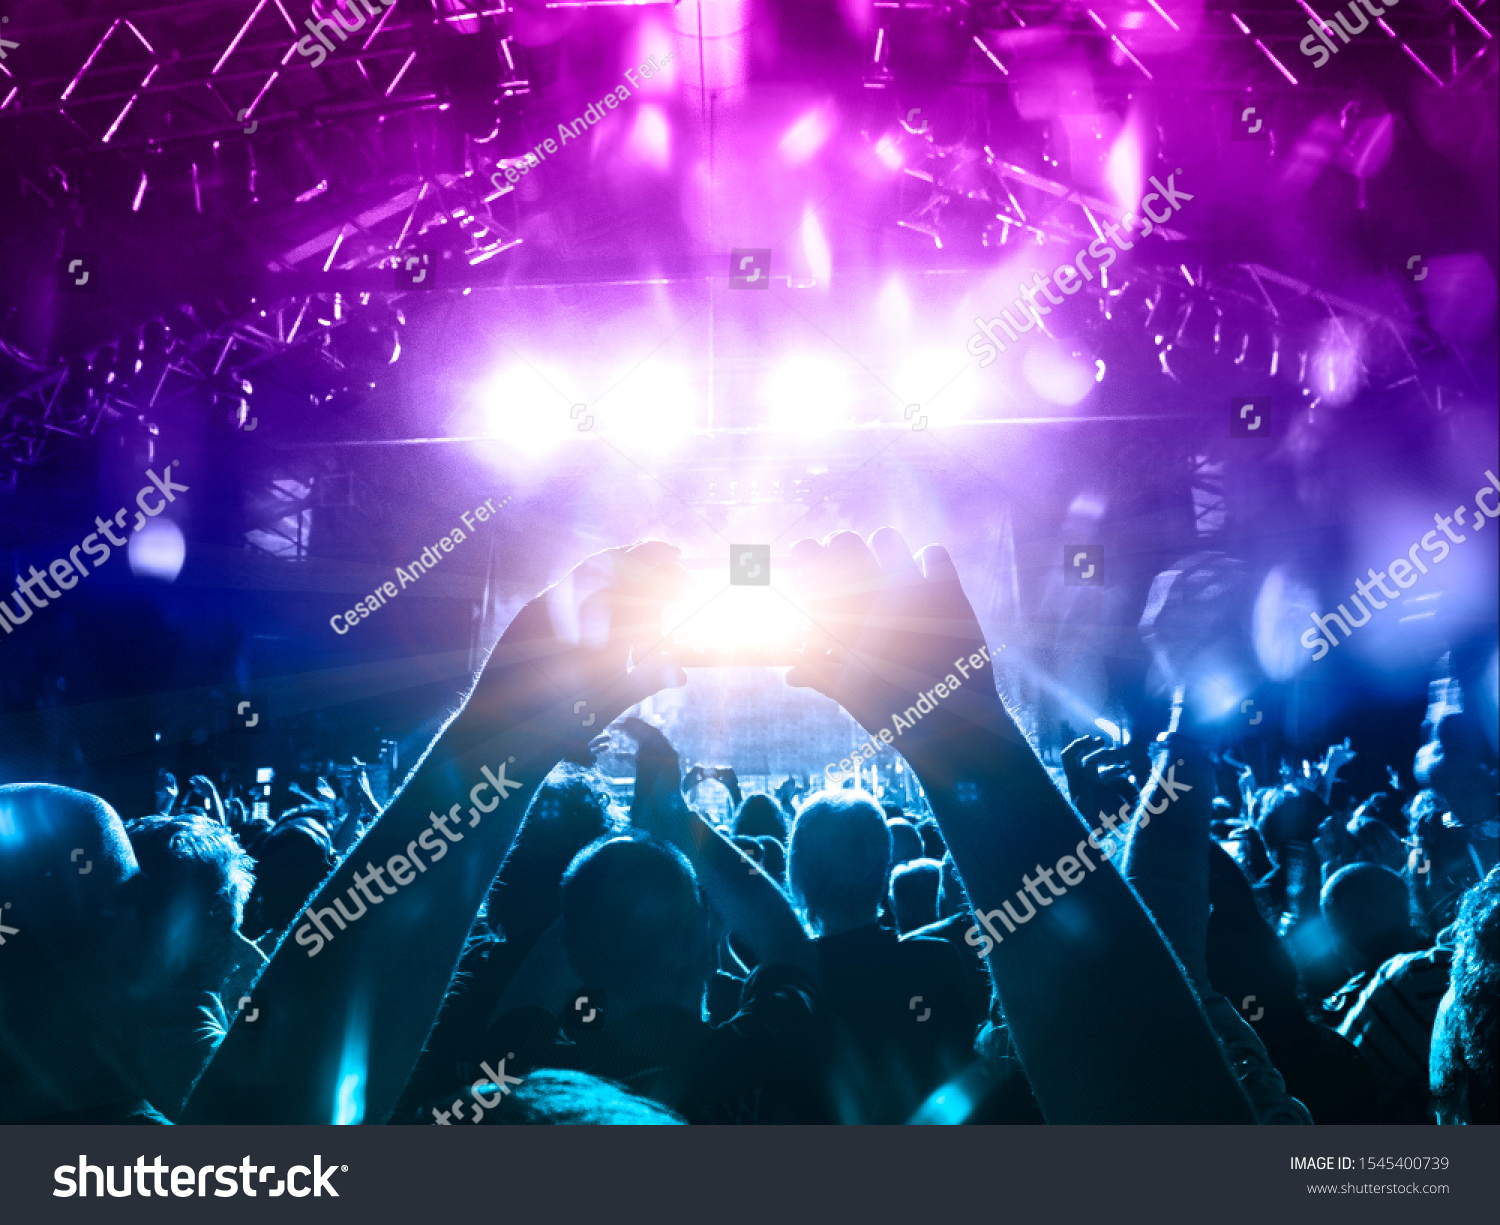 Concert hall crowded with people in front of a stage lit for the gig #1545400739